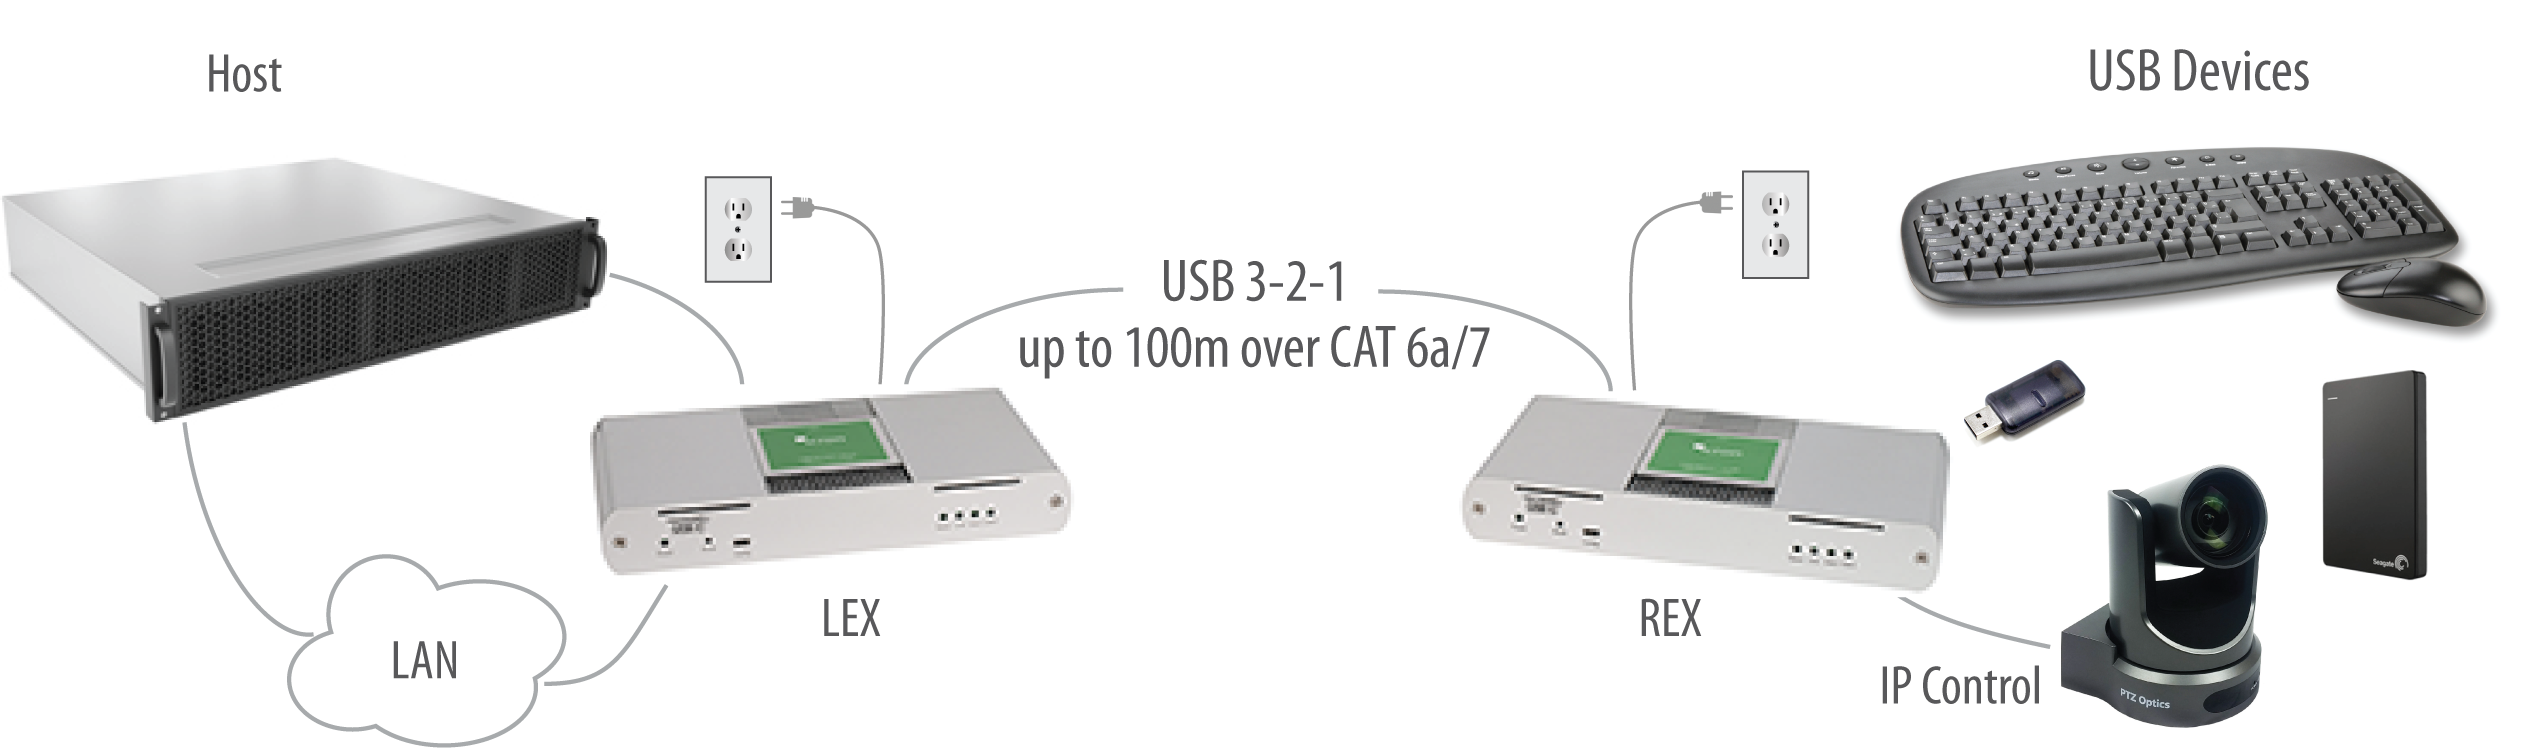 Icron USB 3-2-1 Raven 3104 100m CAT 6a/7 Point-to-Point Extender System Application Diagram